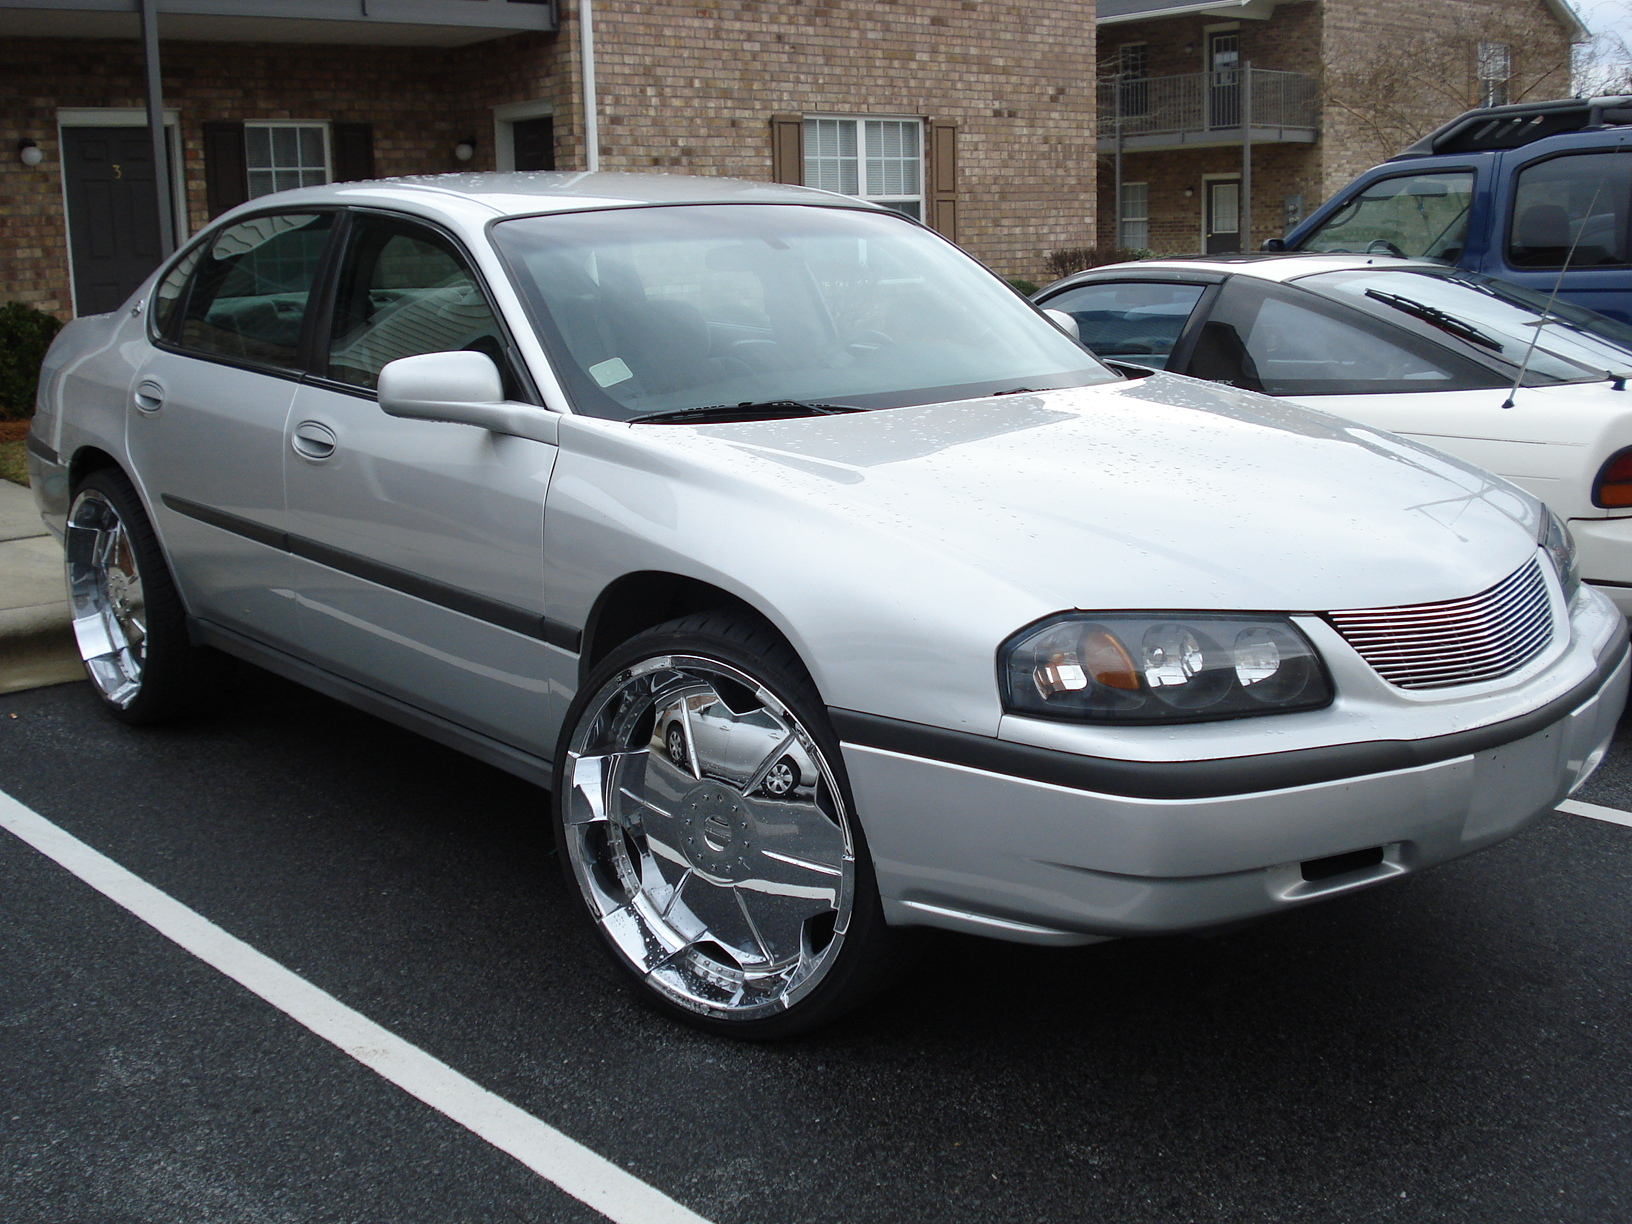 2001 Chevrolet Impala Information And Photos Momentcar